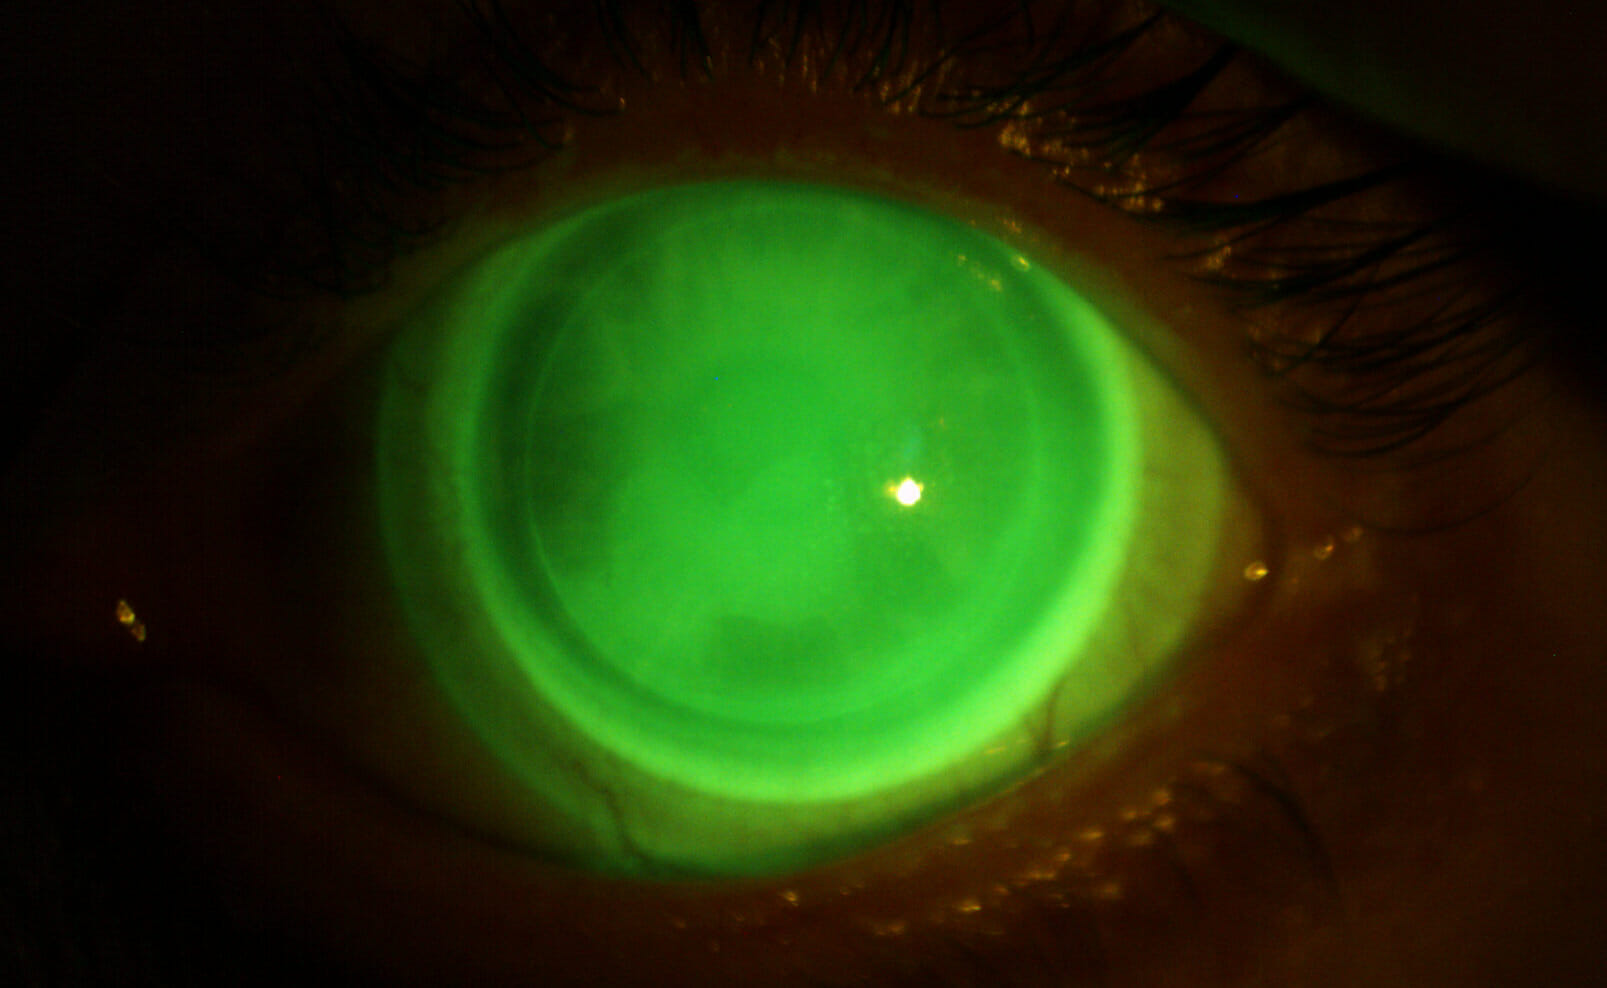 Contact Lenses Post LASIK Complication